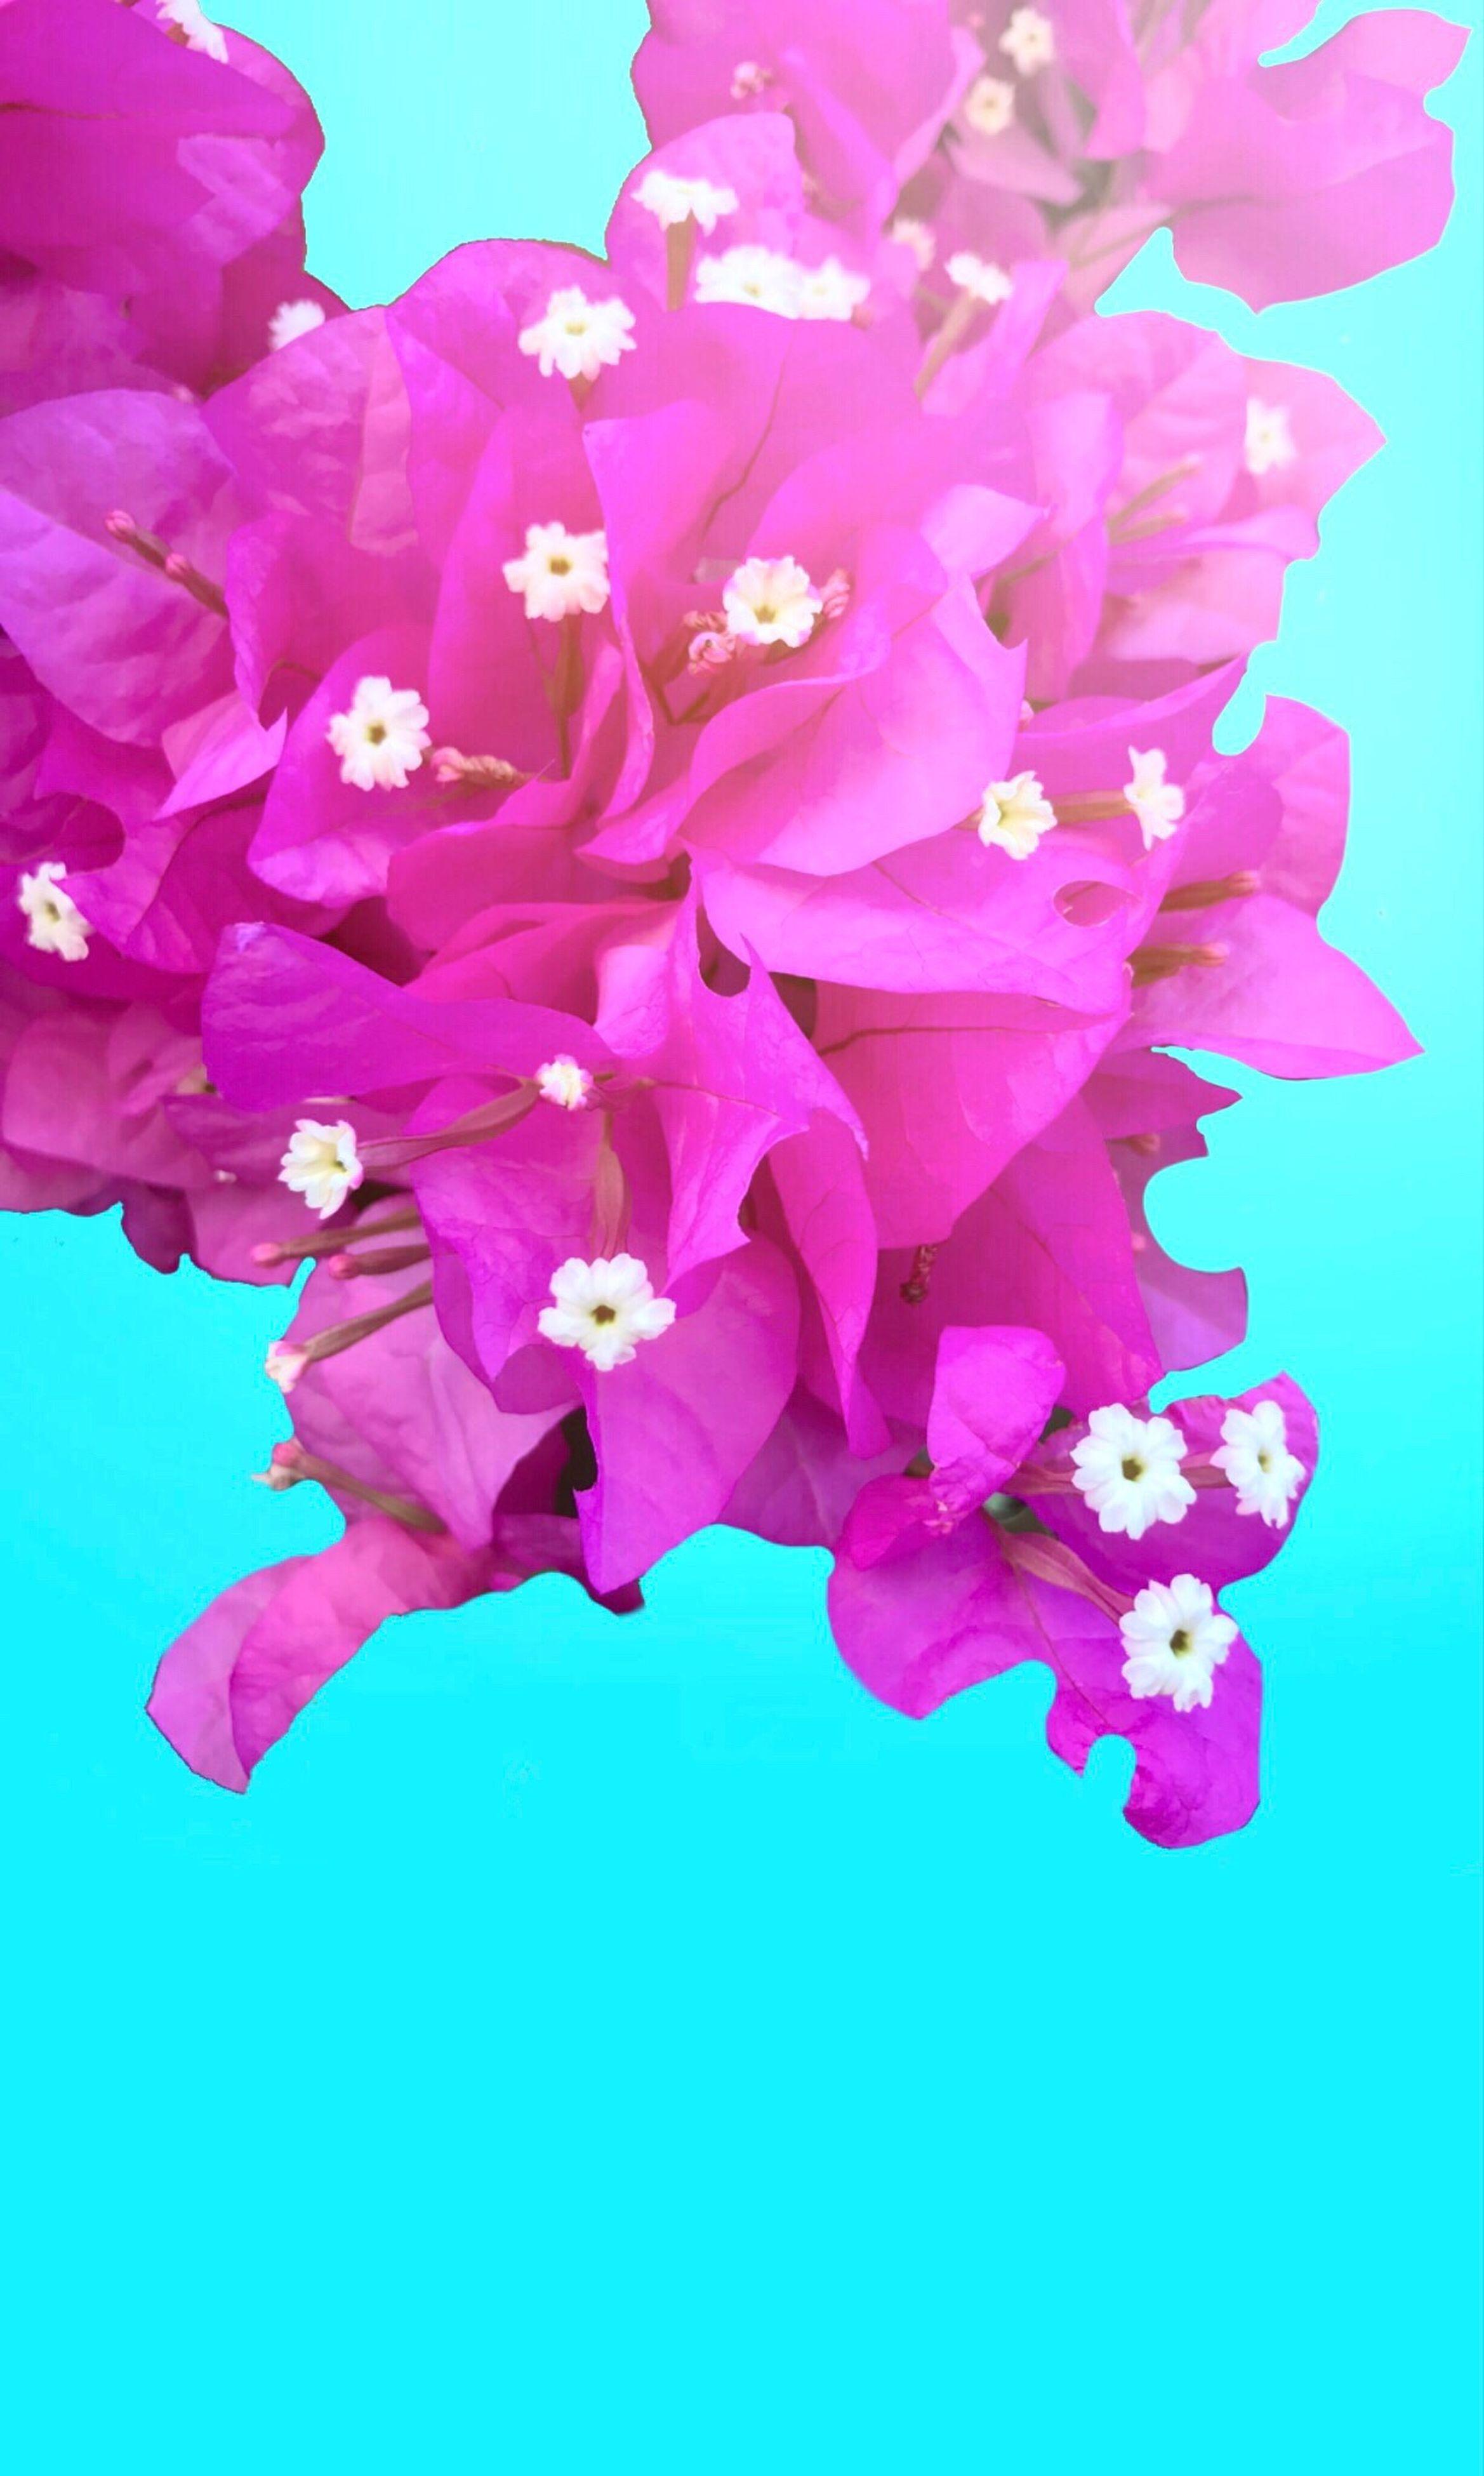 flower, pink color, petal, fragility, no people, beauty in nature, growth, nature, studio shot, freshness, close-up, flower head, bougainvillea, day, outdoors